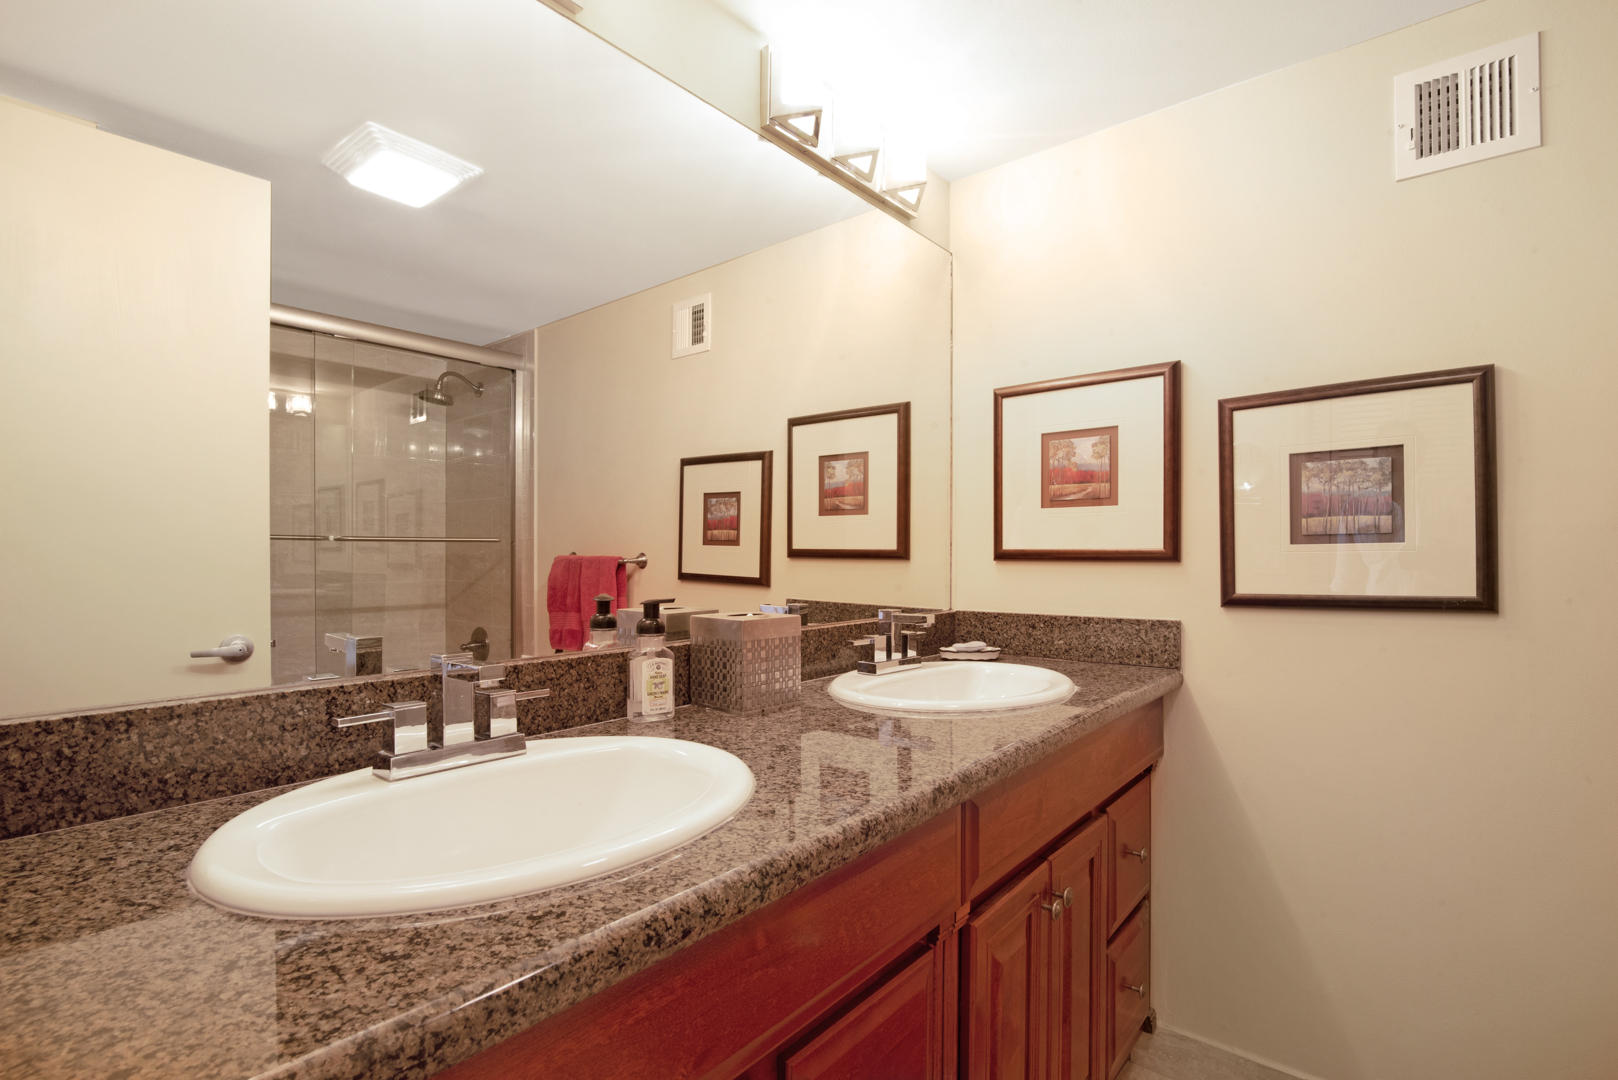 2800 S Ocean Boulevard 11-K Boca Raton, FL 33432 small photo 18